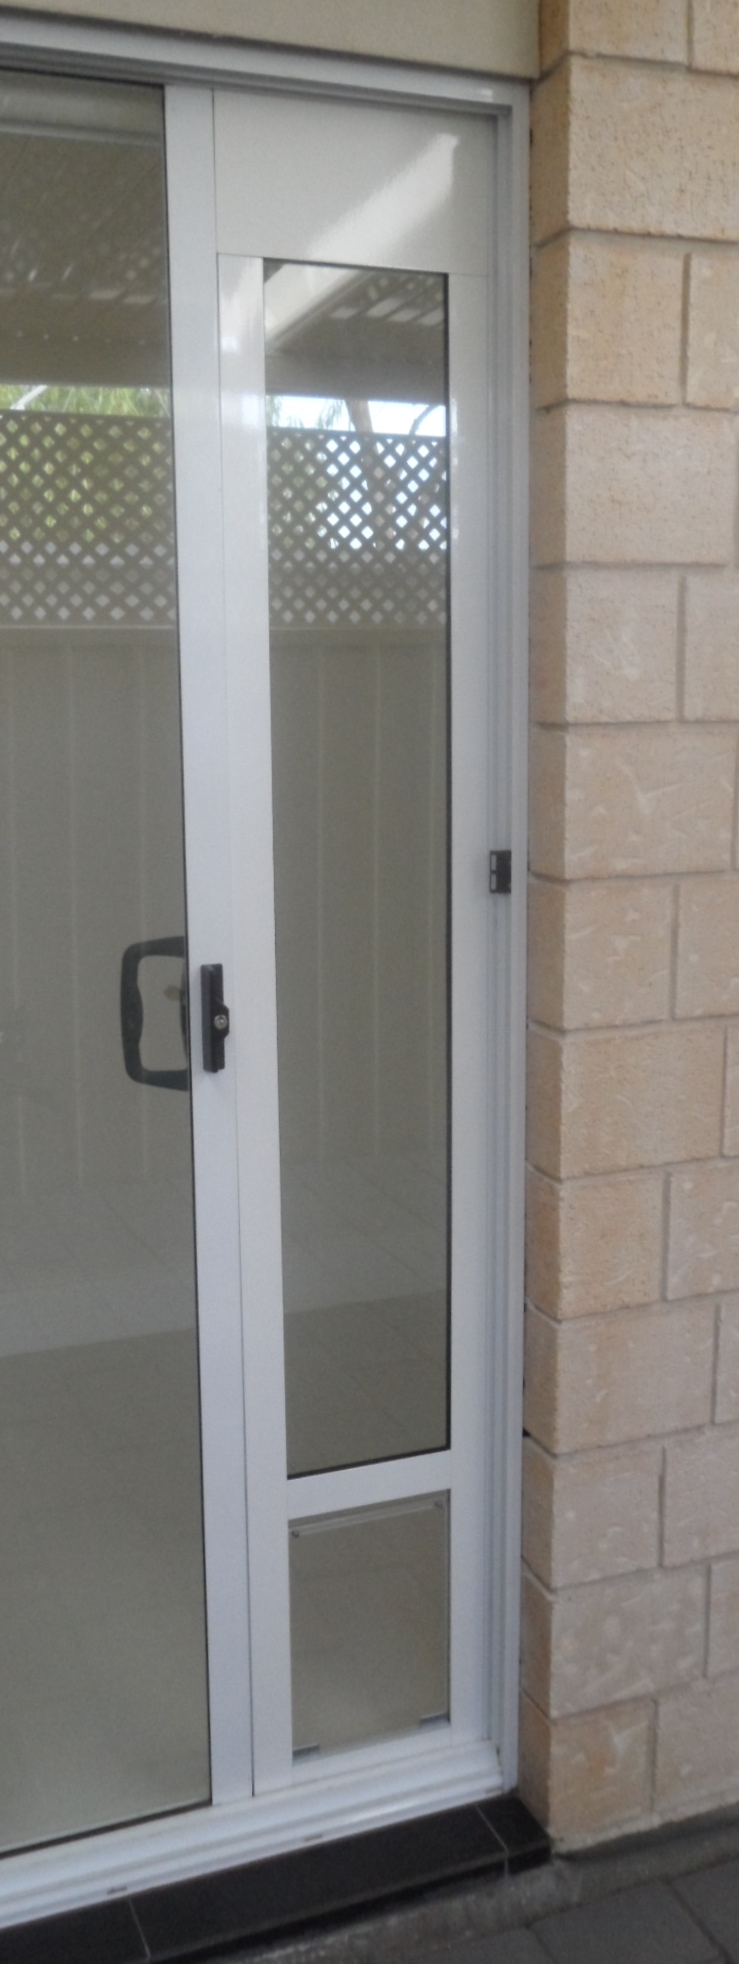 Sliding screen door sliding screen door with pet door for Built in sliding doors